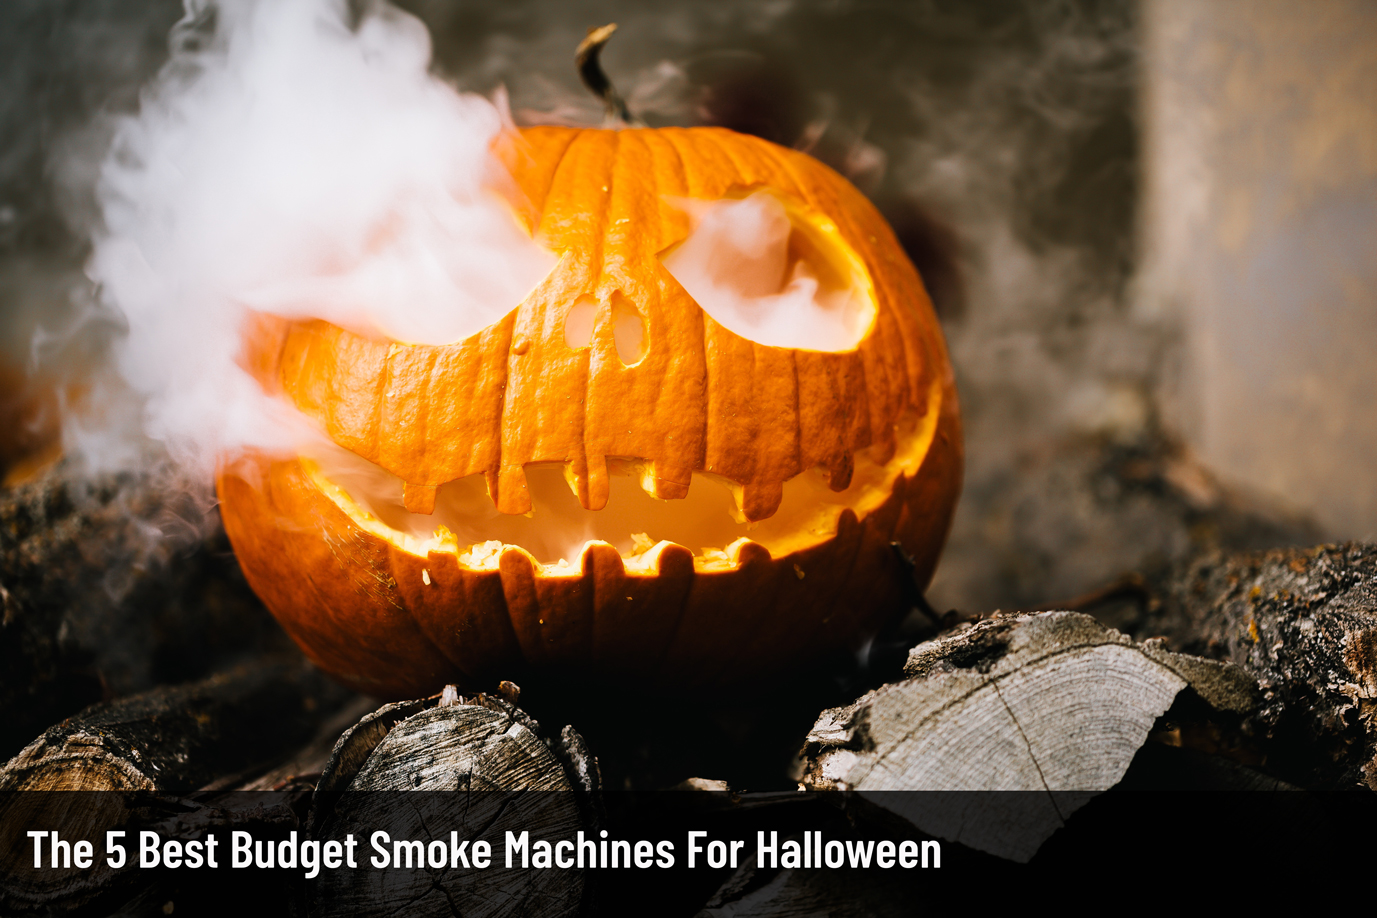 5 Best Budget Smoke Machines For Halloween